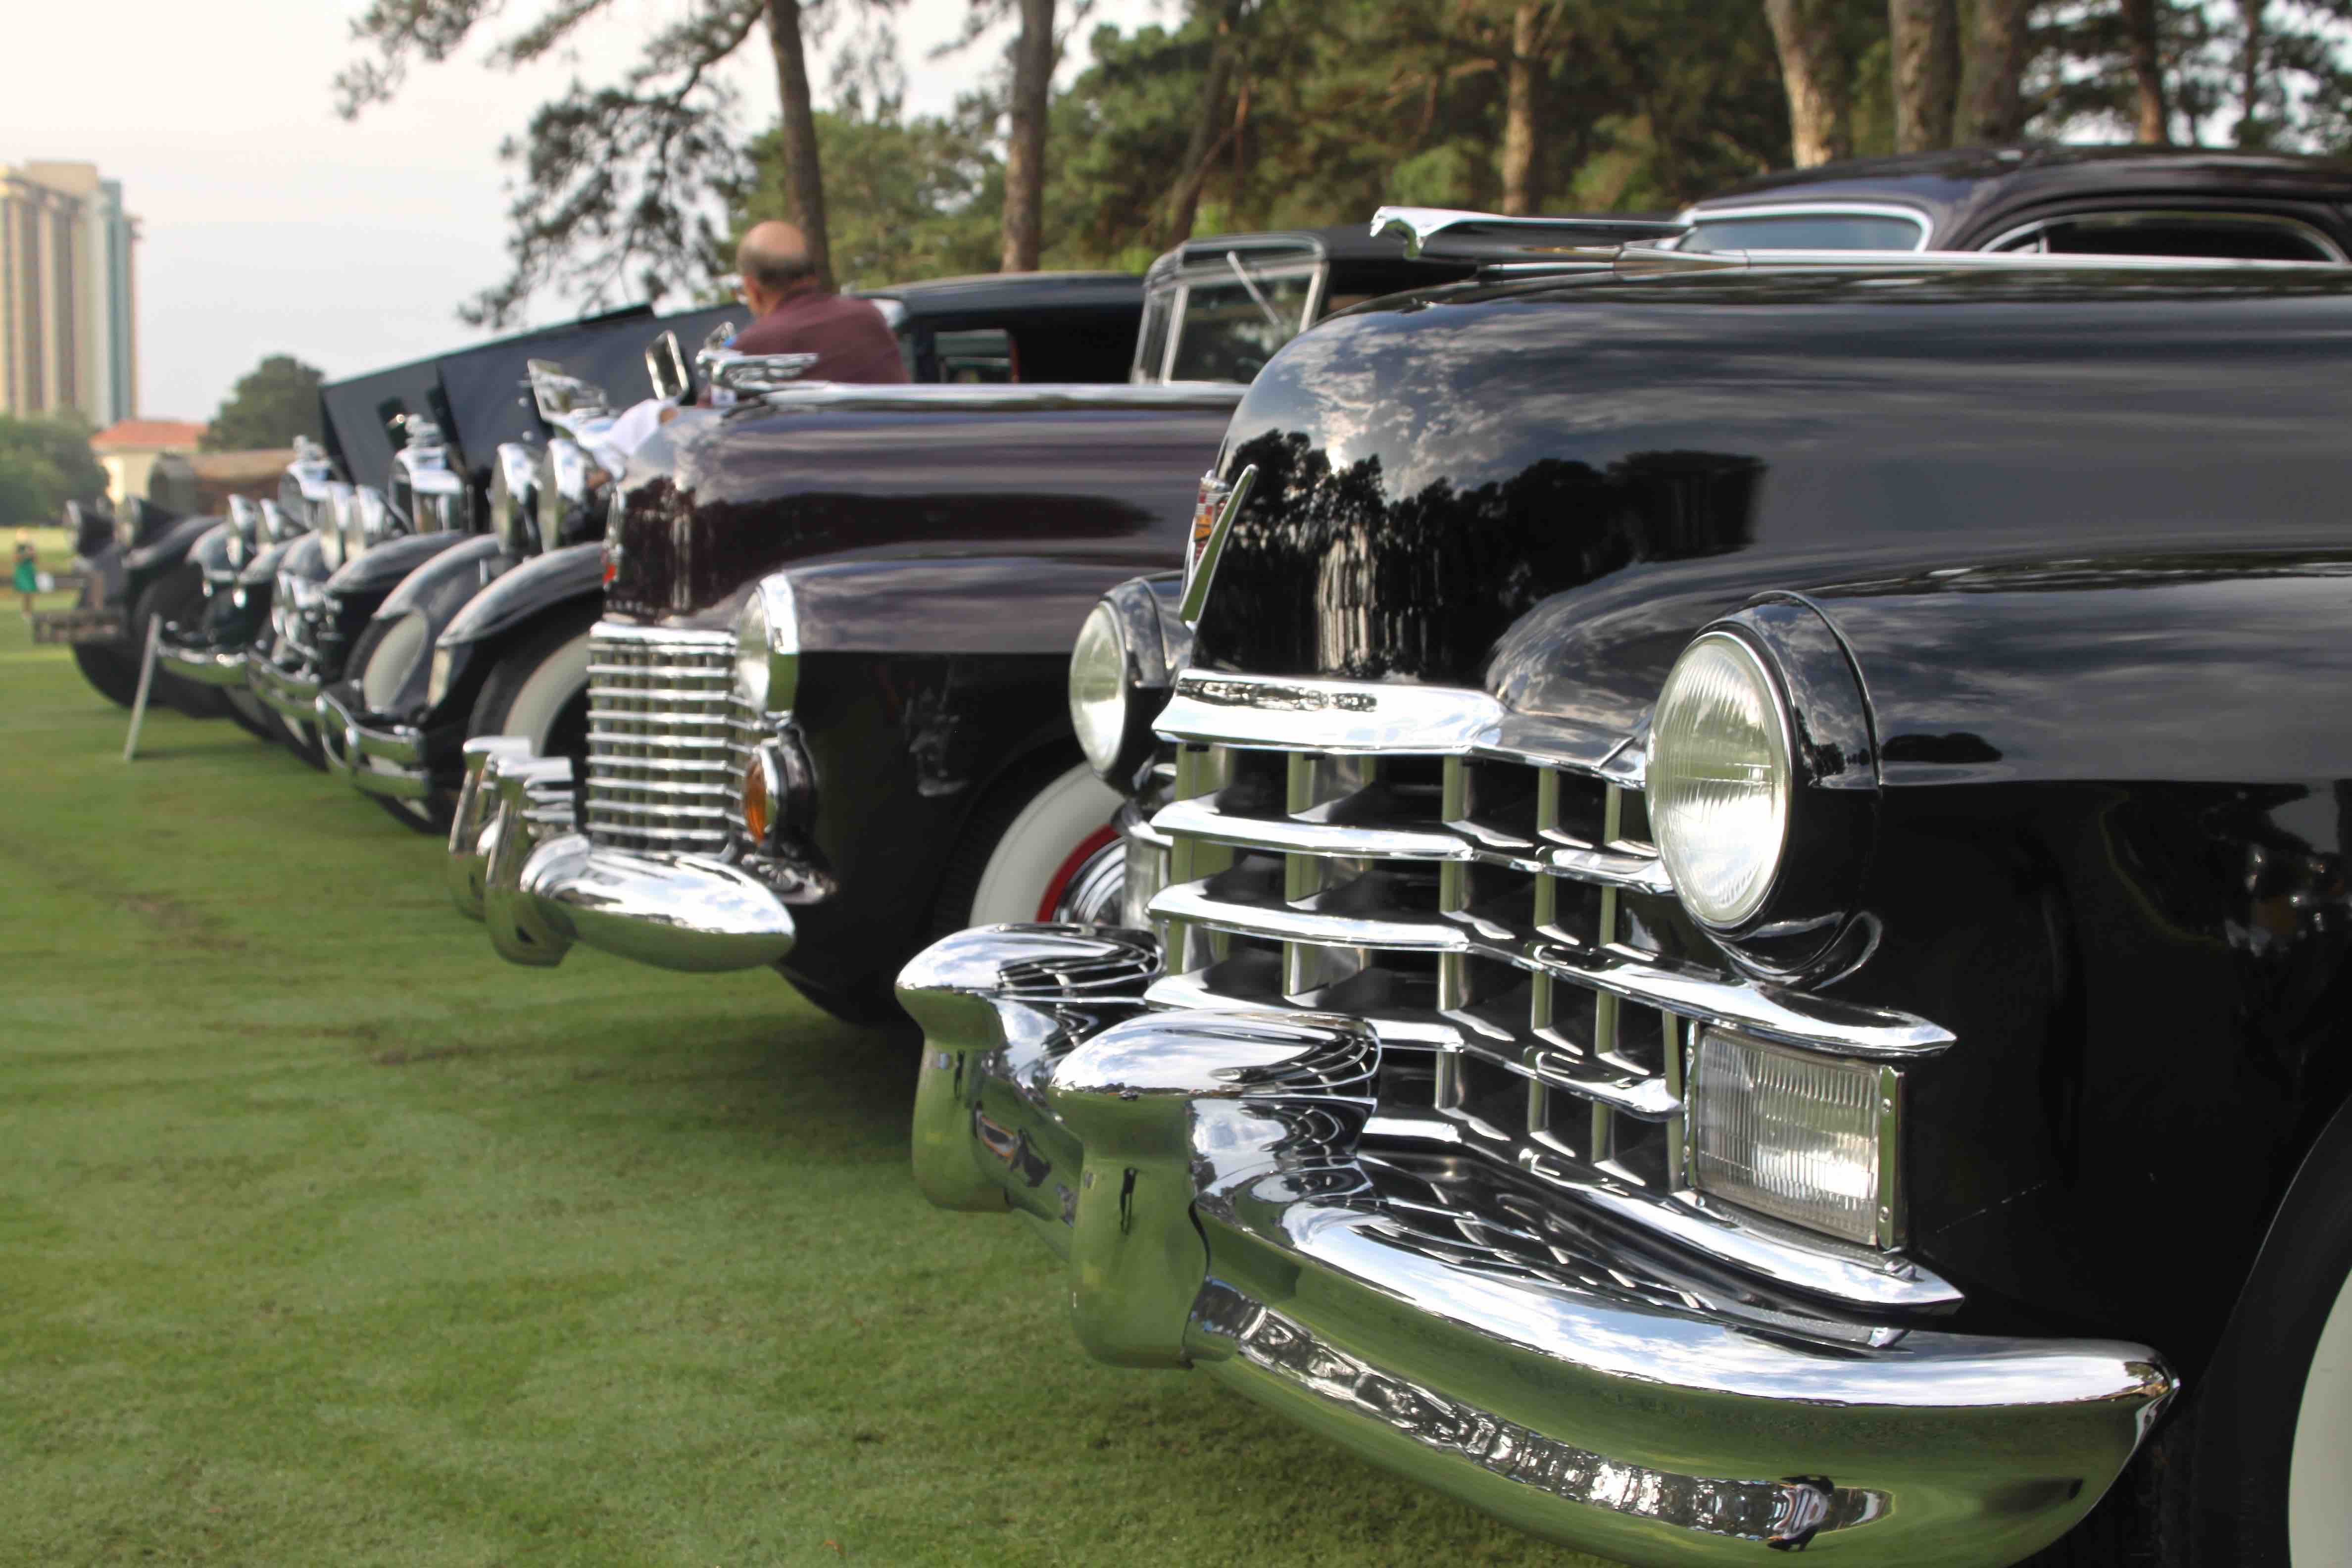 CoT 2015 car show row of classic cars